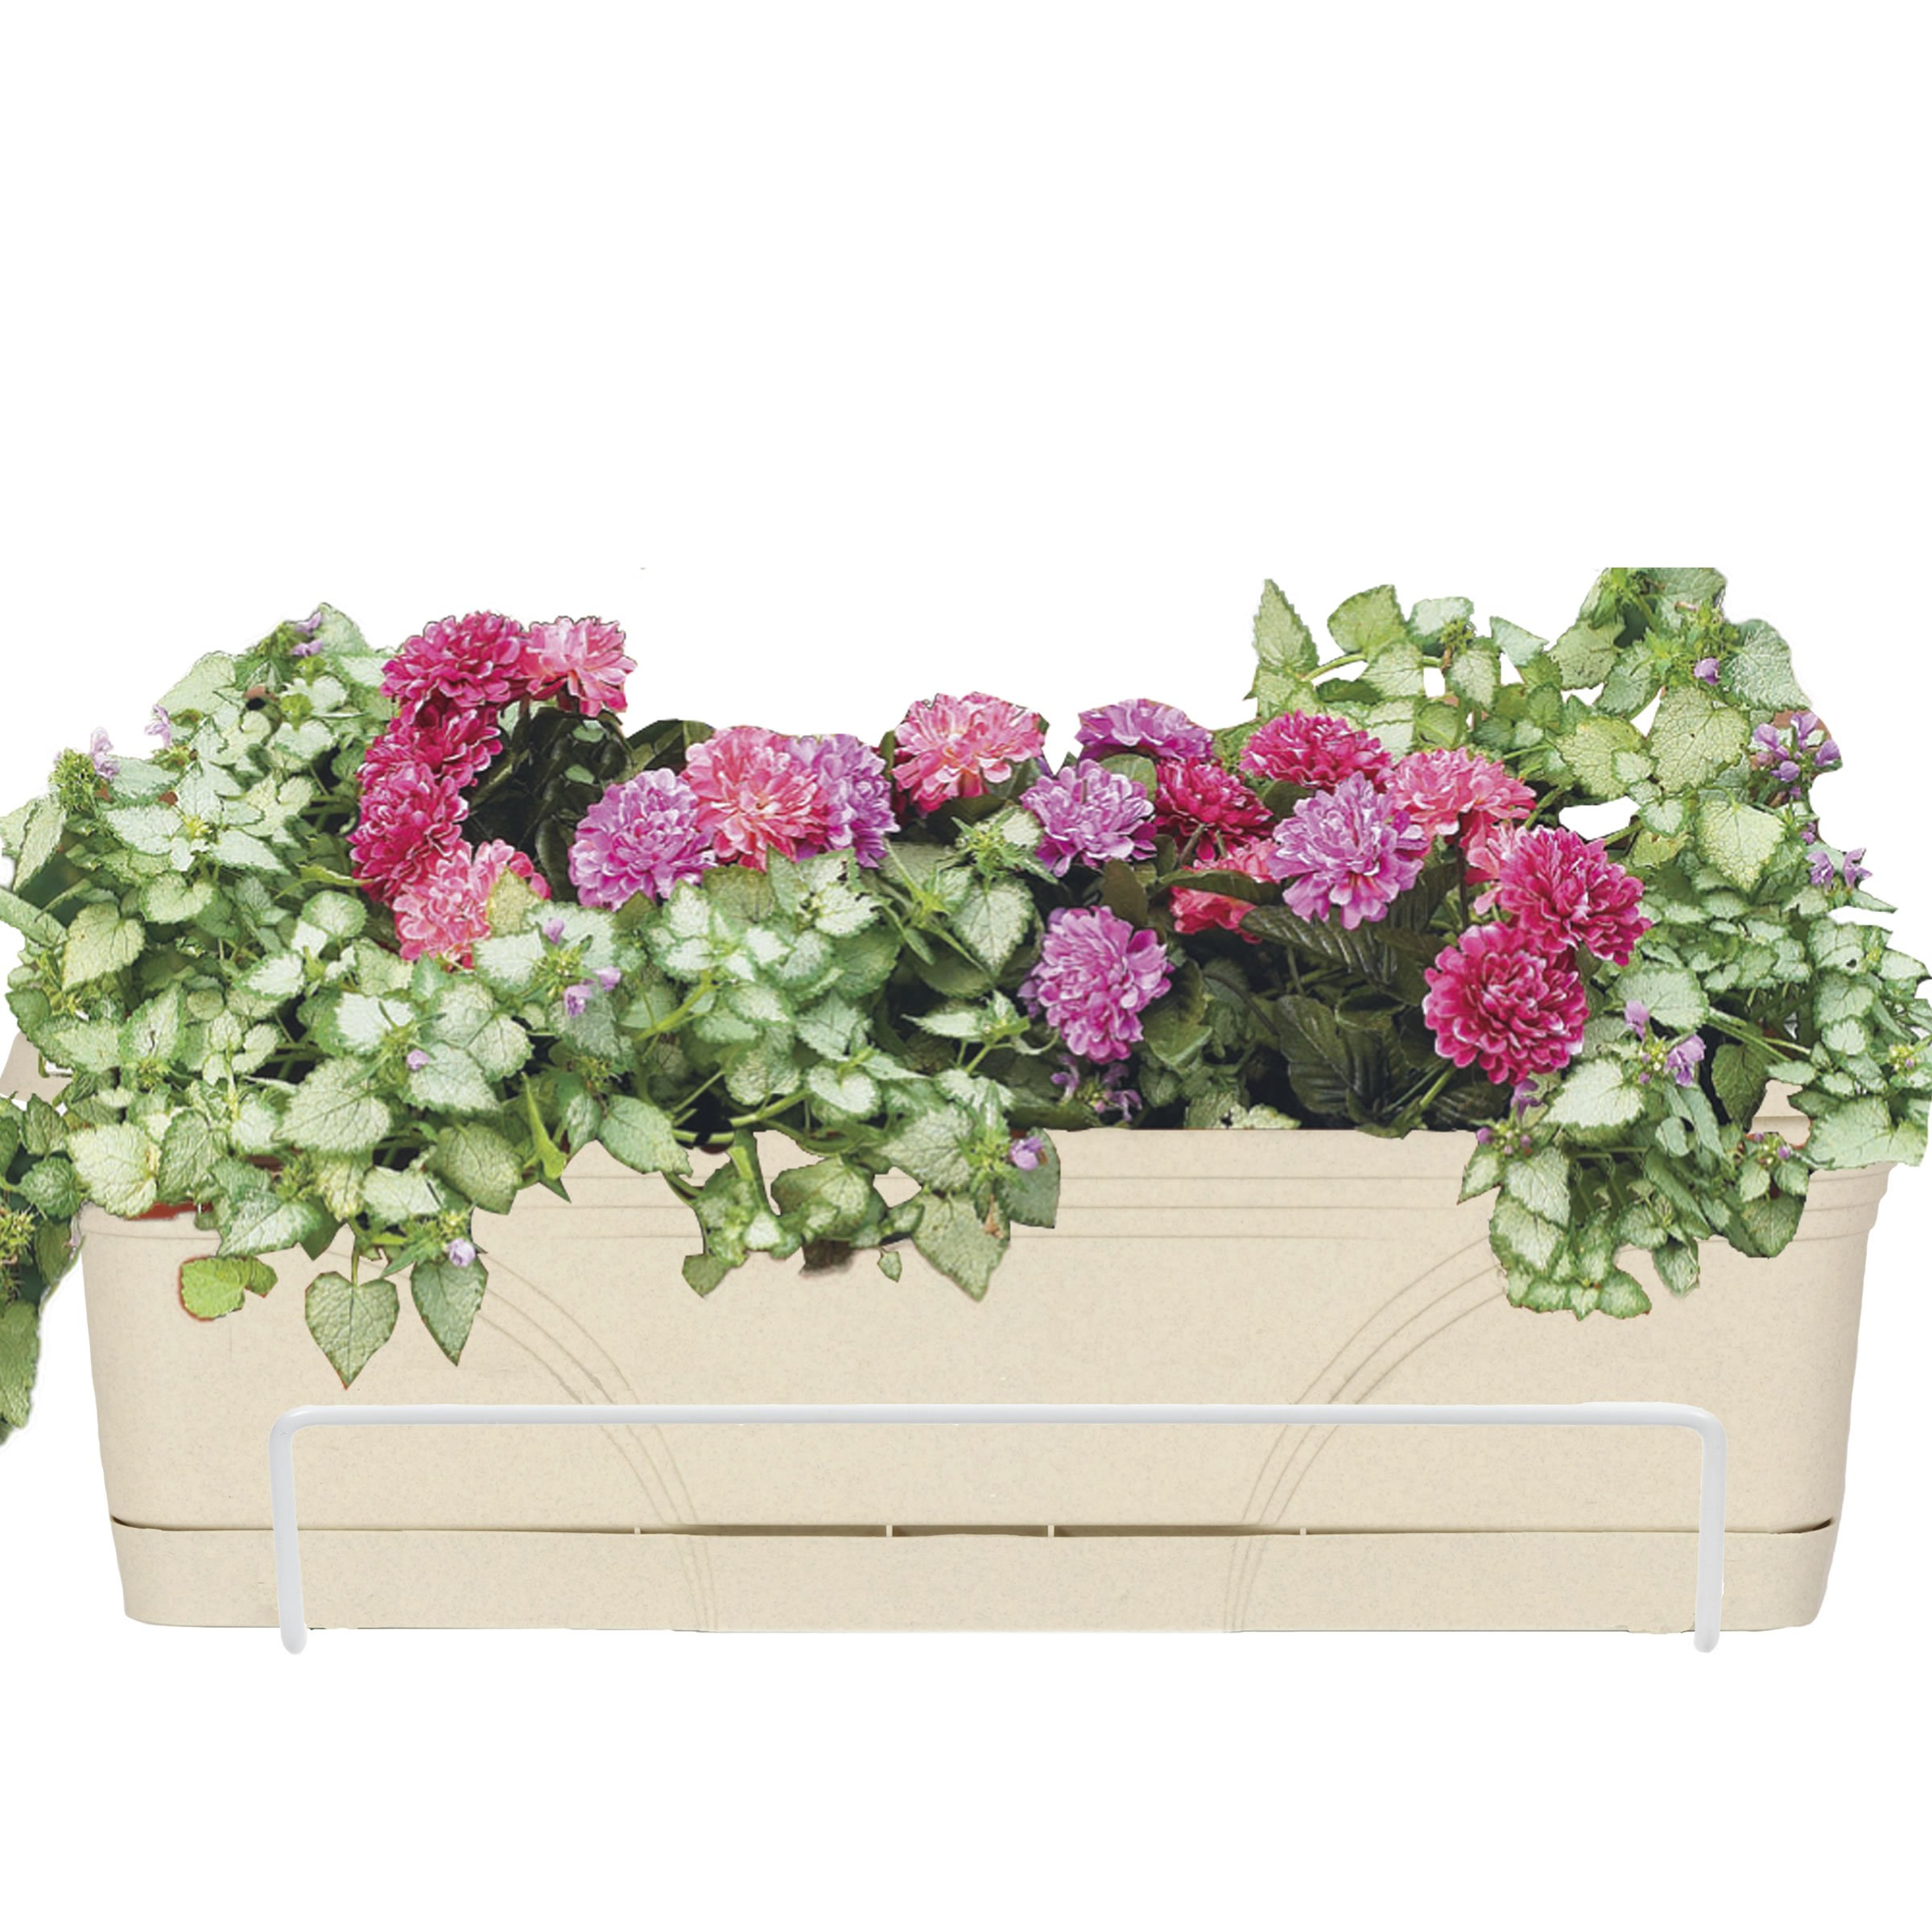 CobraCo White Adjustable Open-End Flower Box Holder for Boxes of Size 18-Inch to 36-Inch (NO BOX INCLUDED) FOE26-W by CobraCo